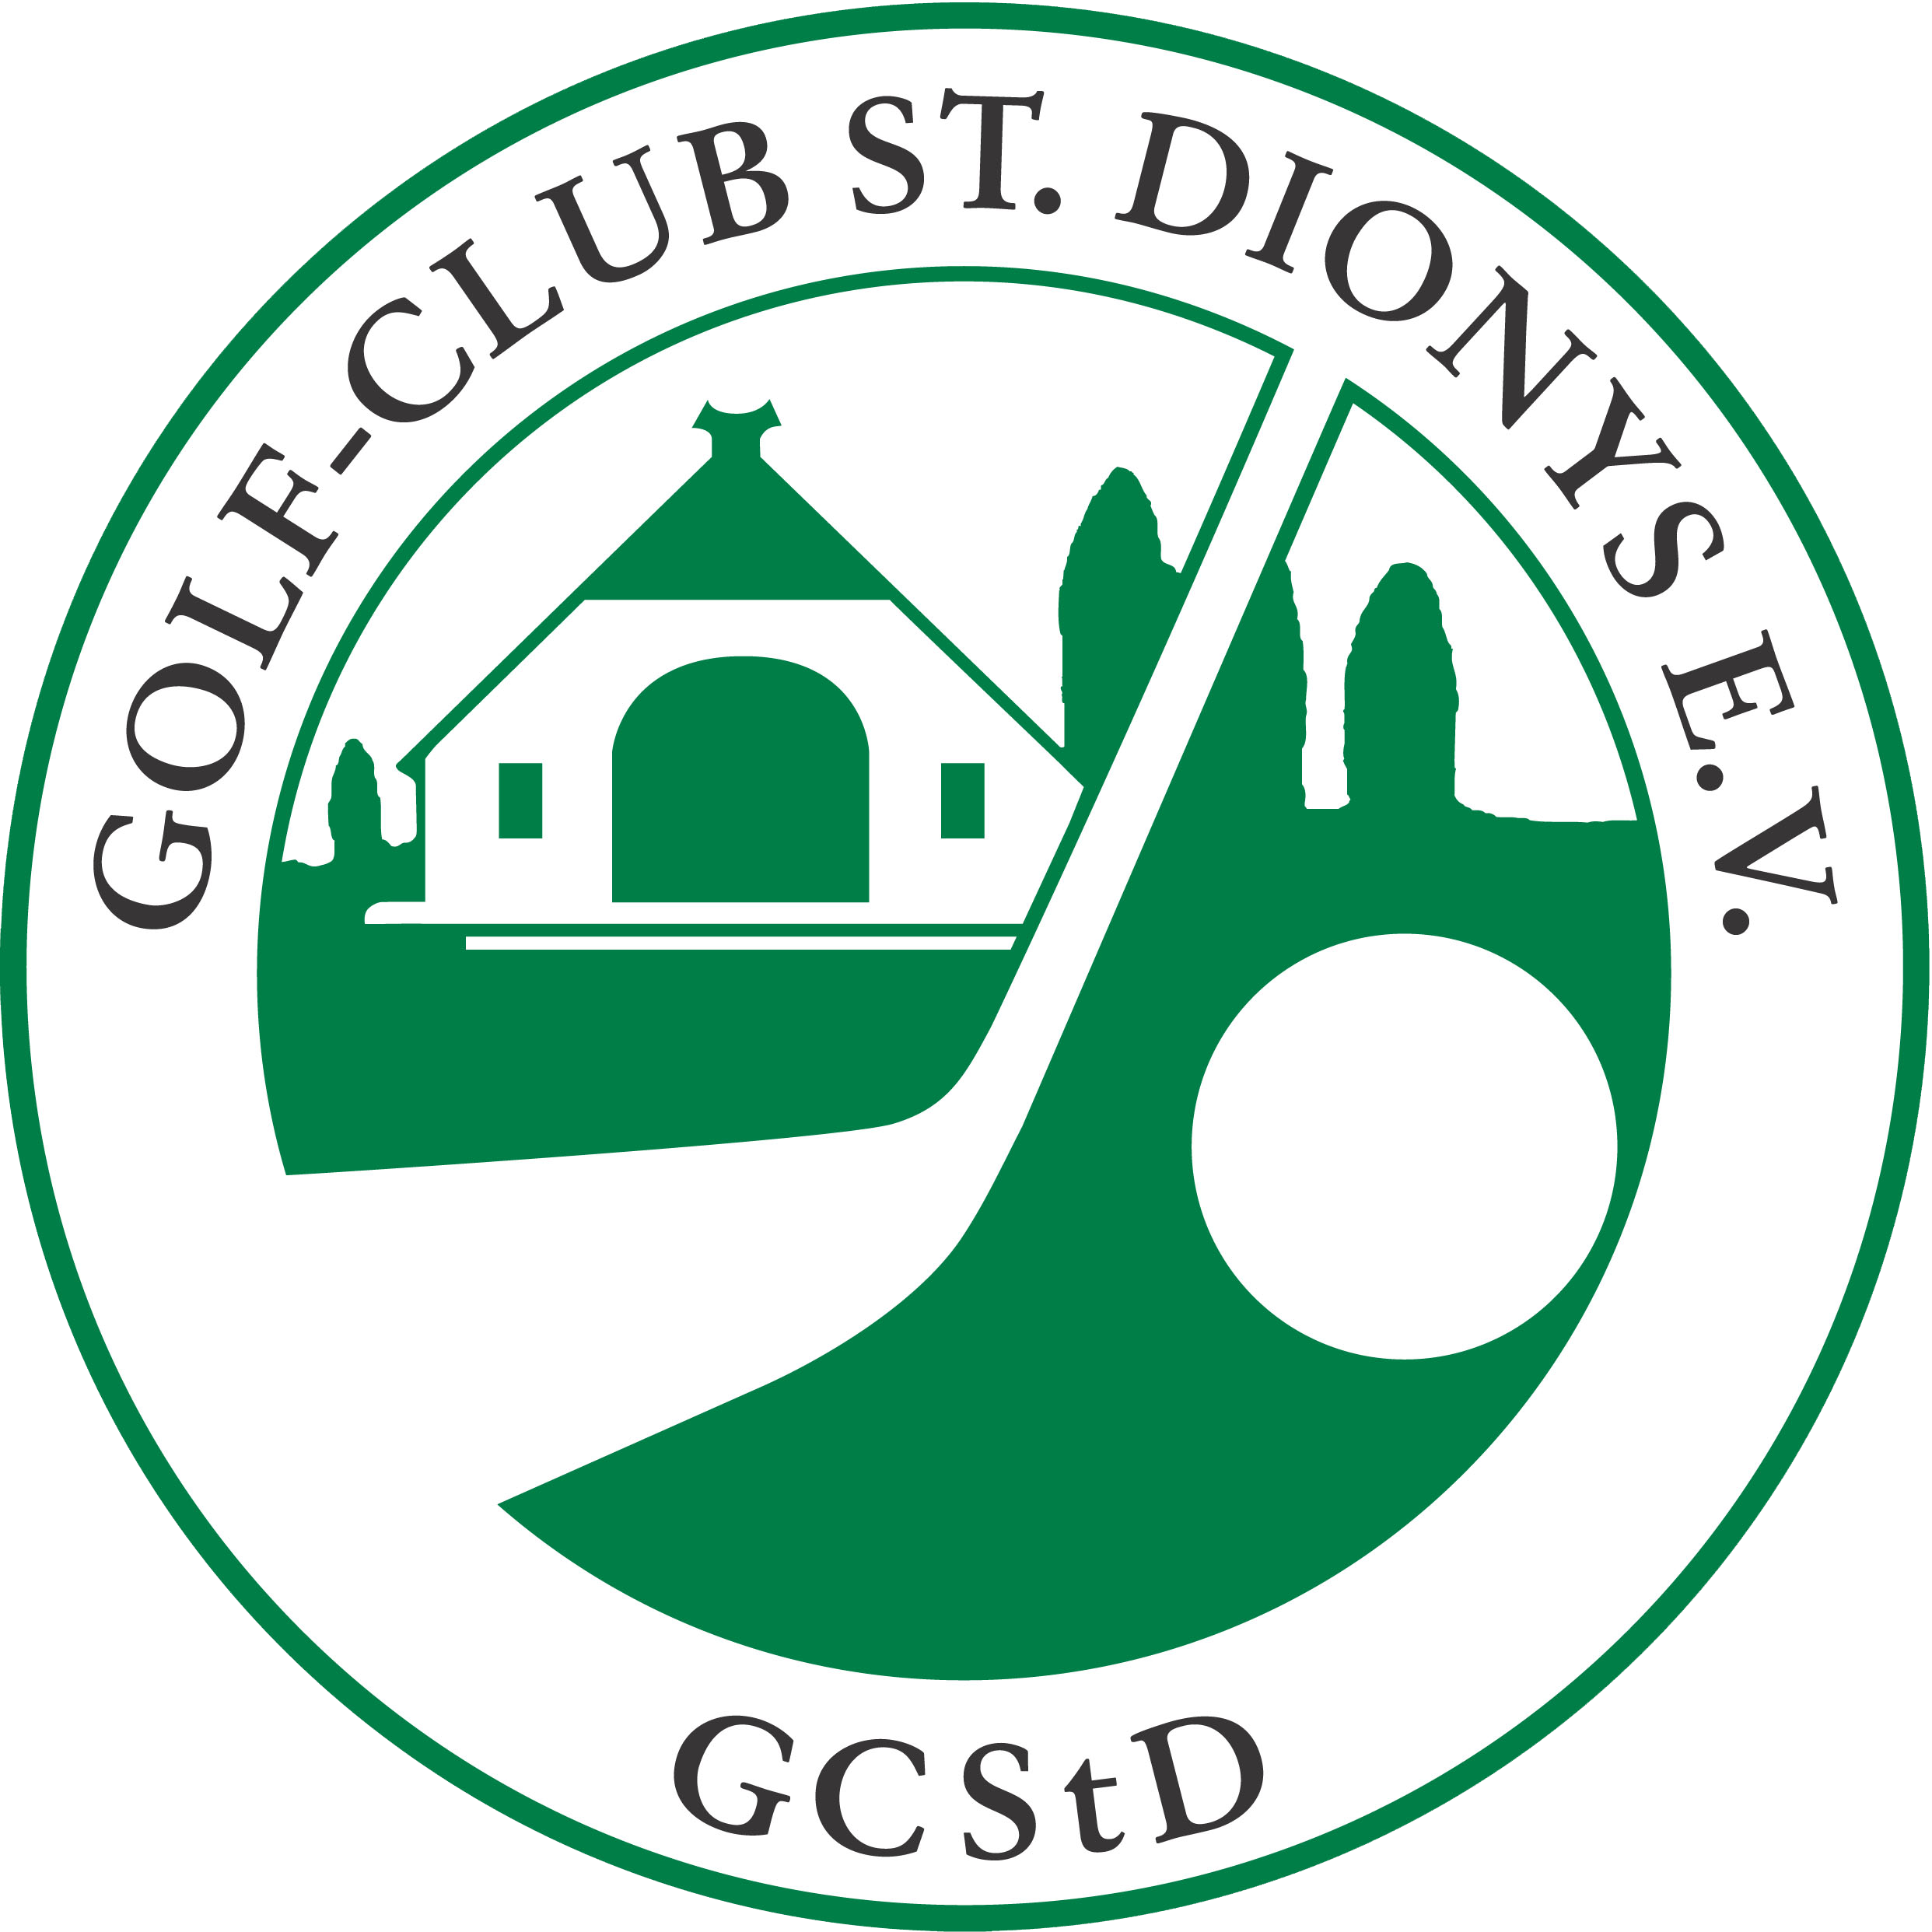 8.4 Golf Club St. Dionys